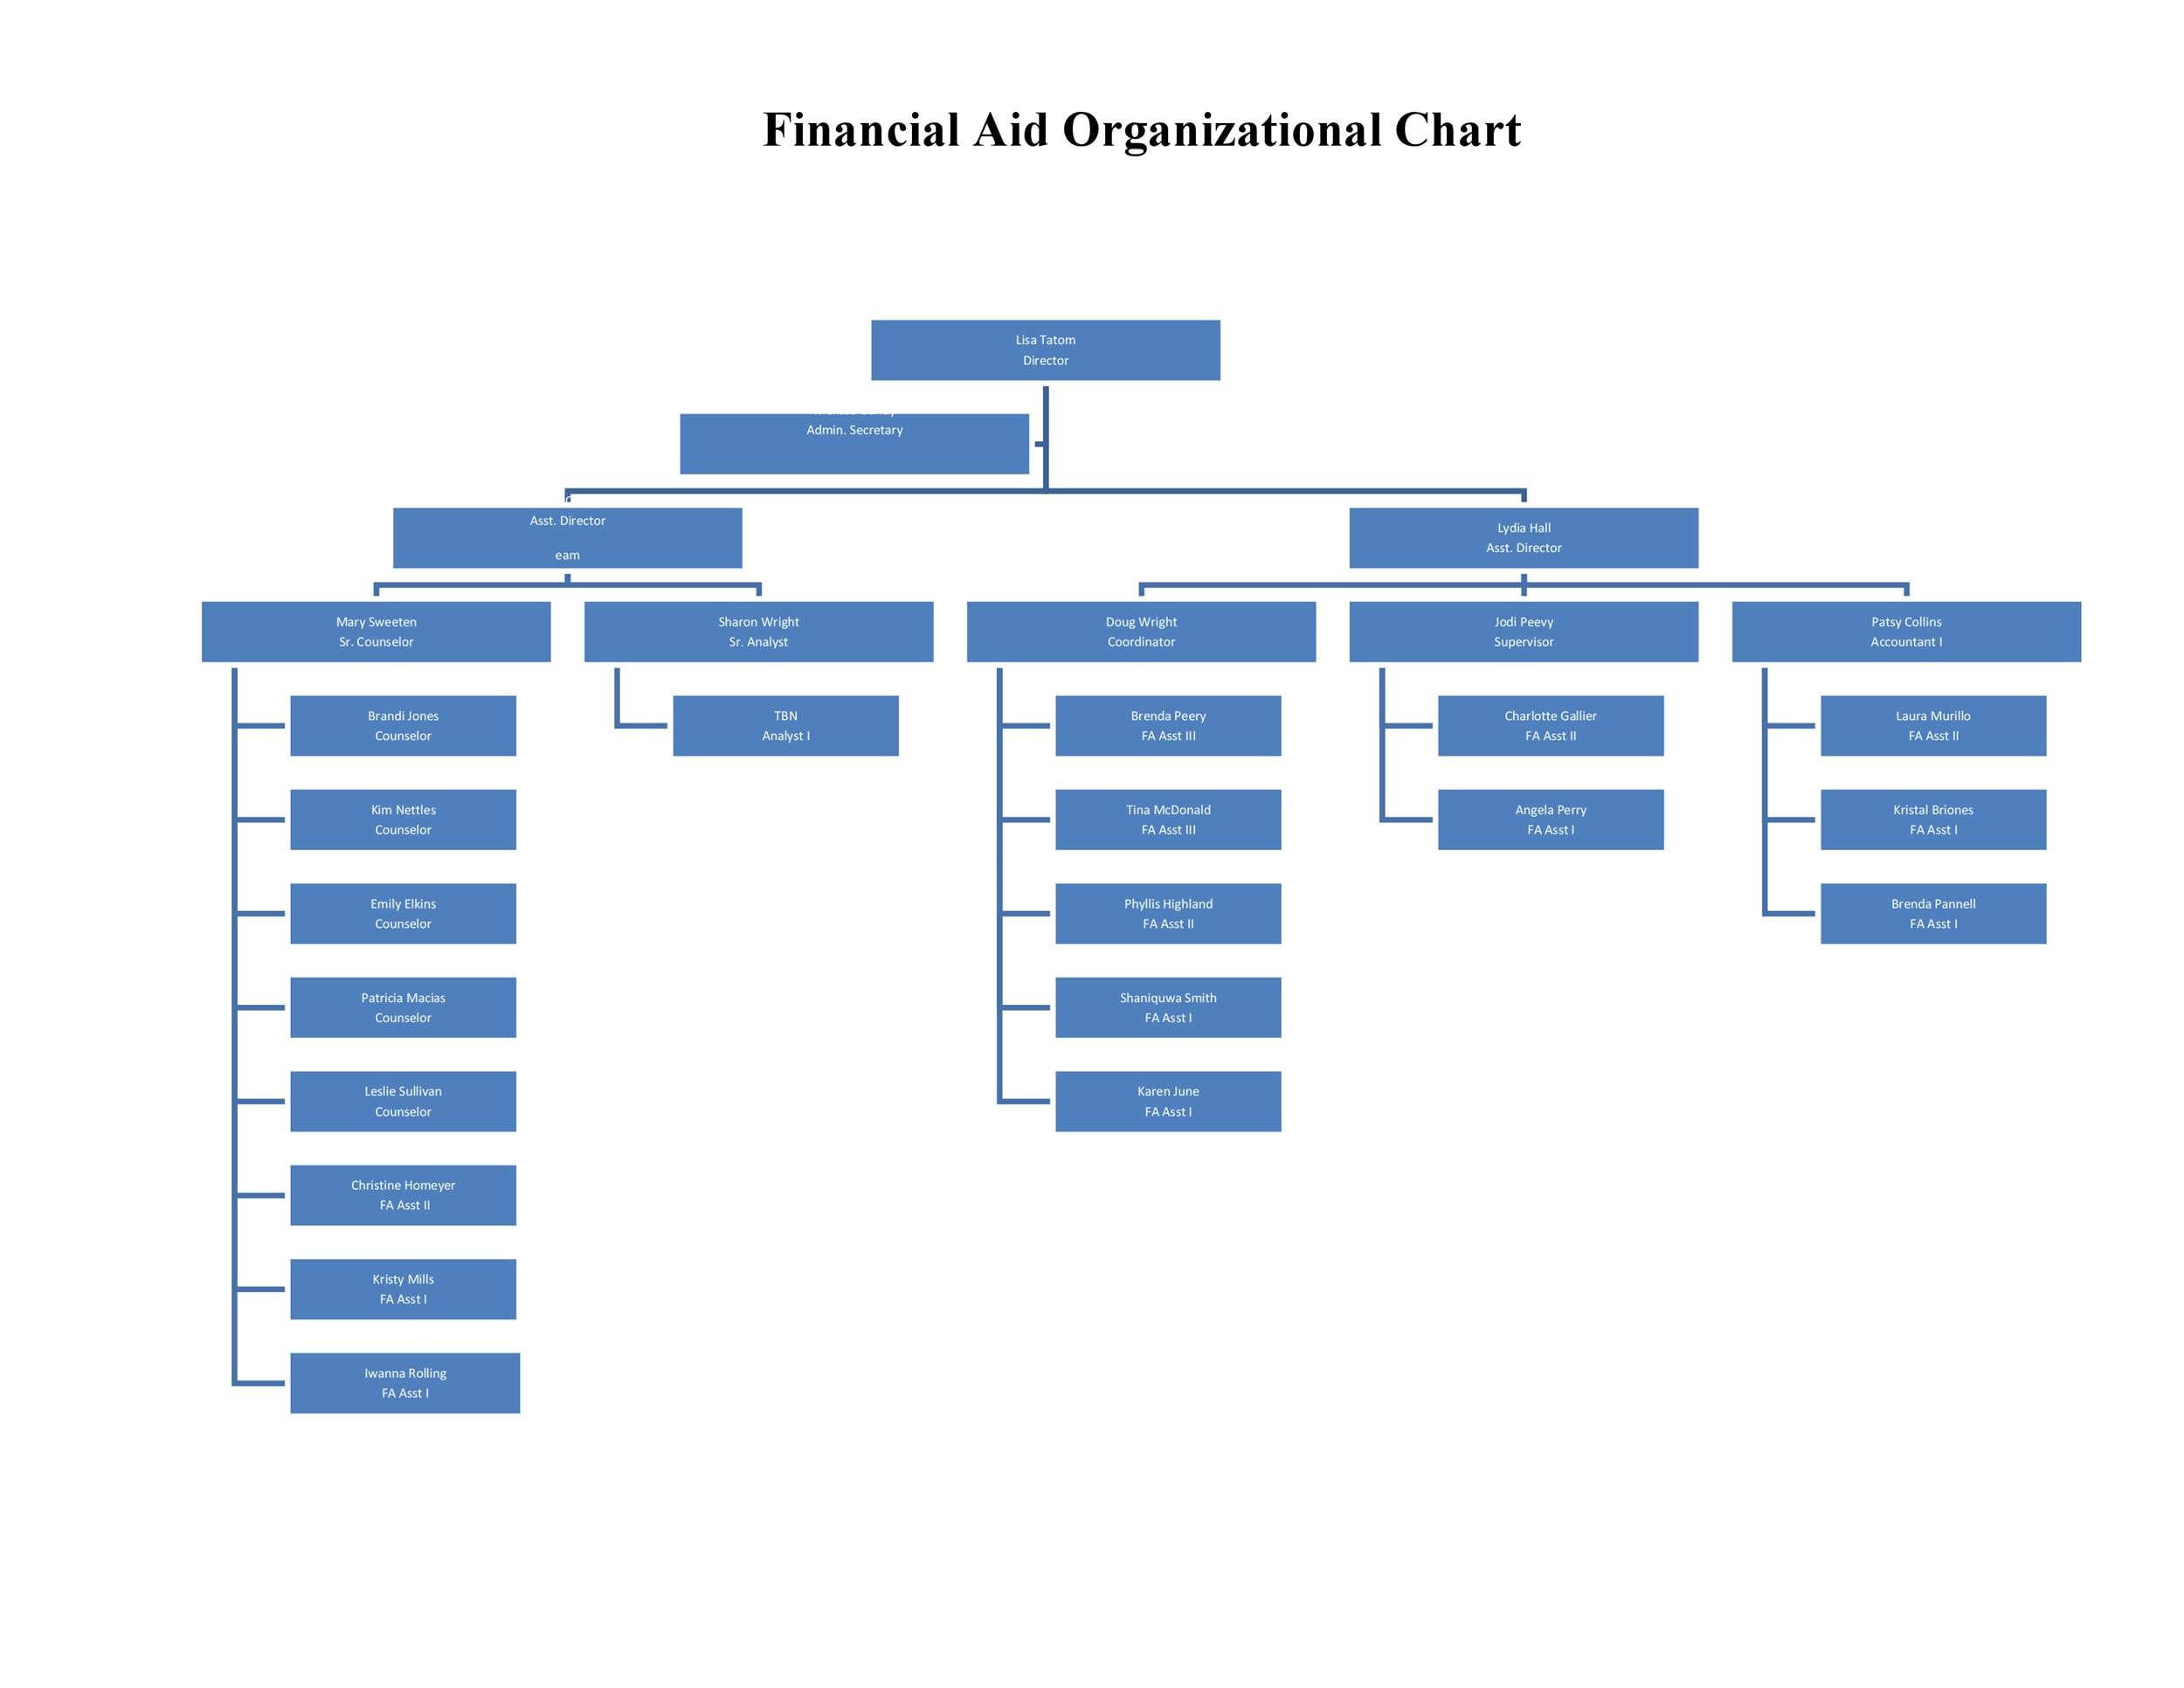 30 Organizational Chart Templates Word, Excel, PowerPoint, PSD